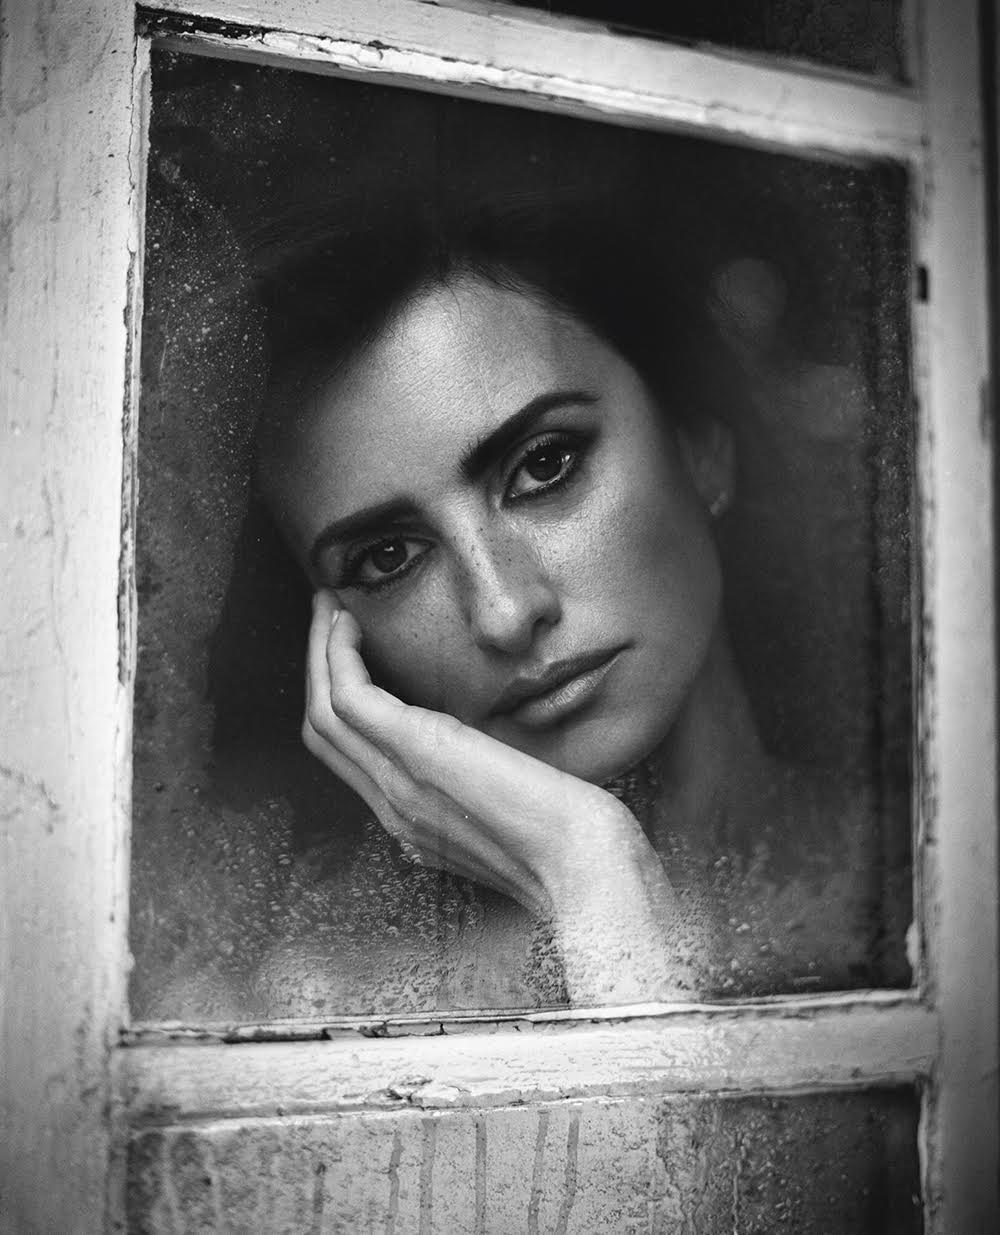 Penélope Cruz Madrid, 2015 from the book Personal Photo © Vincent Peters